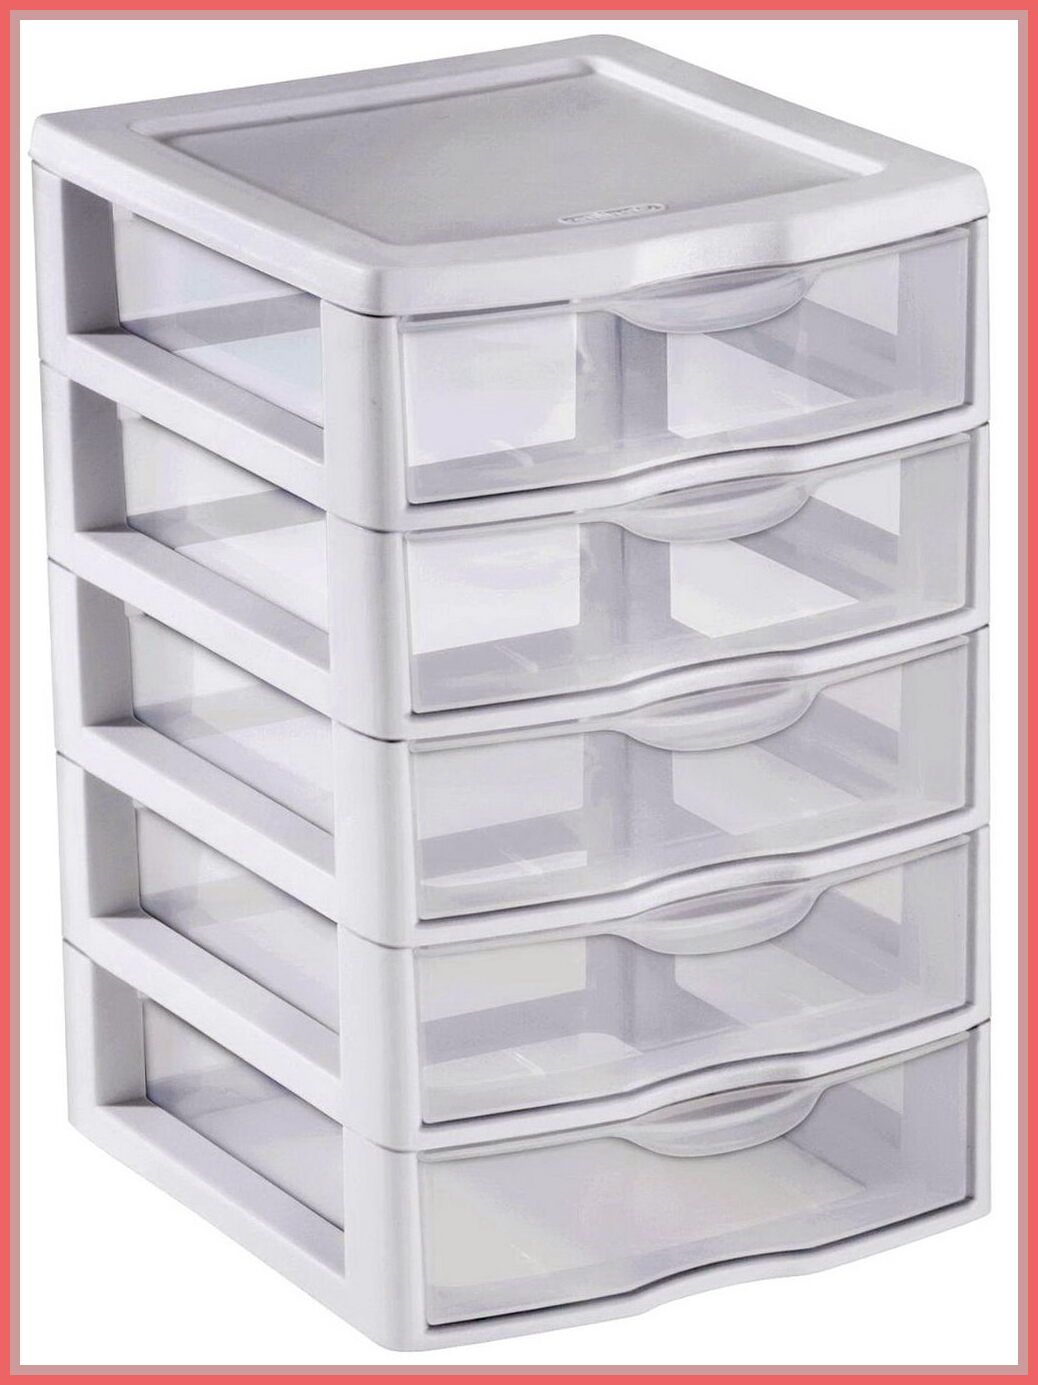 Cheap Storage Drawers Buy Quality Home Garden Directly From China Suppliers Otherhouse Plastic Dr In 2020 Clothes Drawer Organization Closet Dividers Clothes Drawer